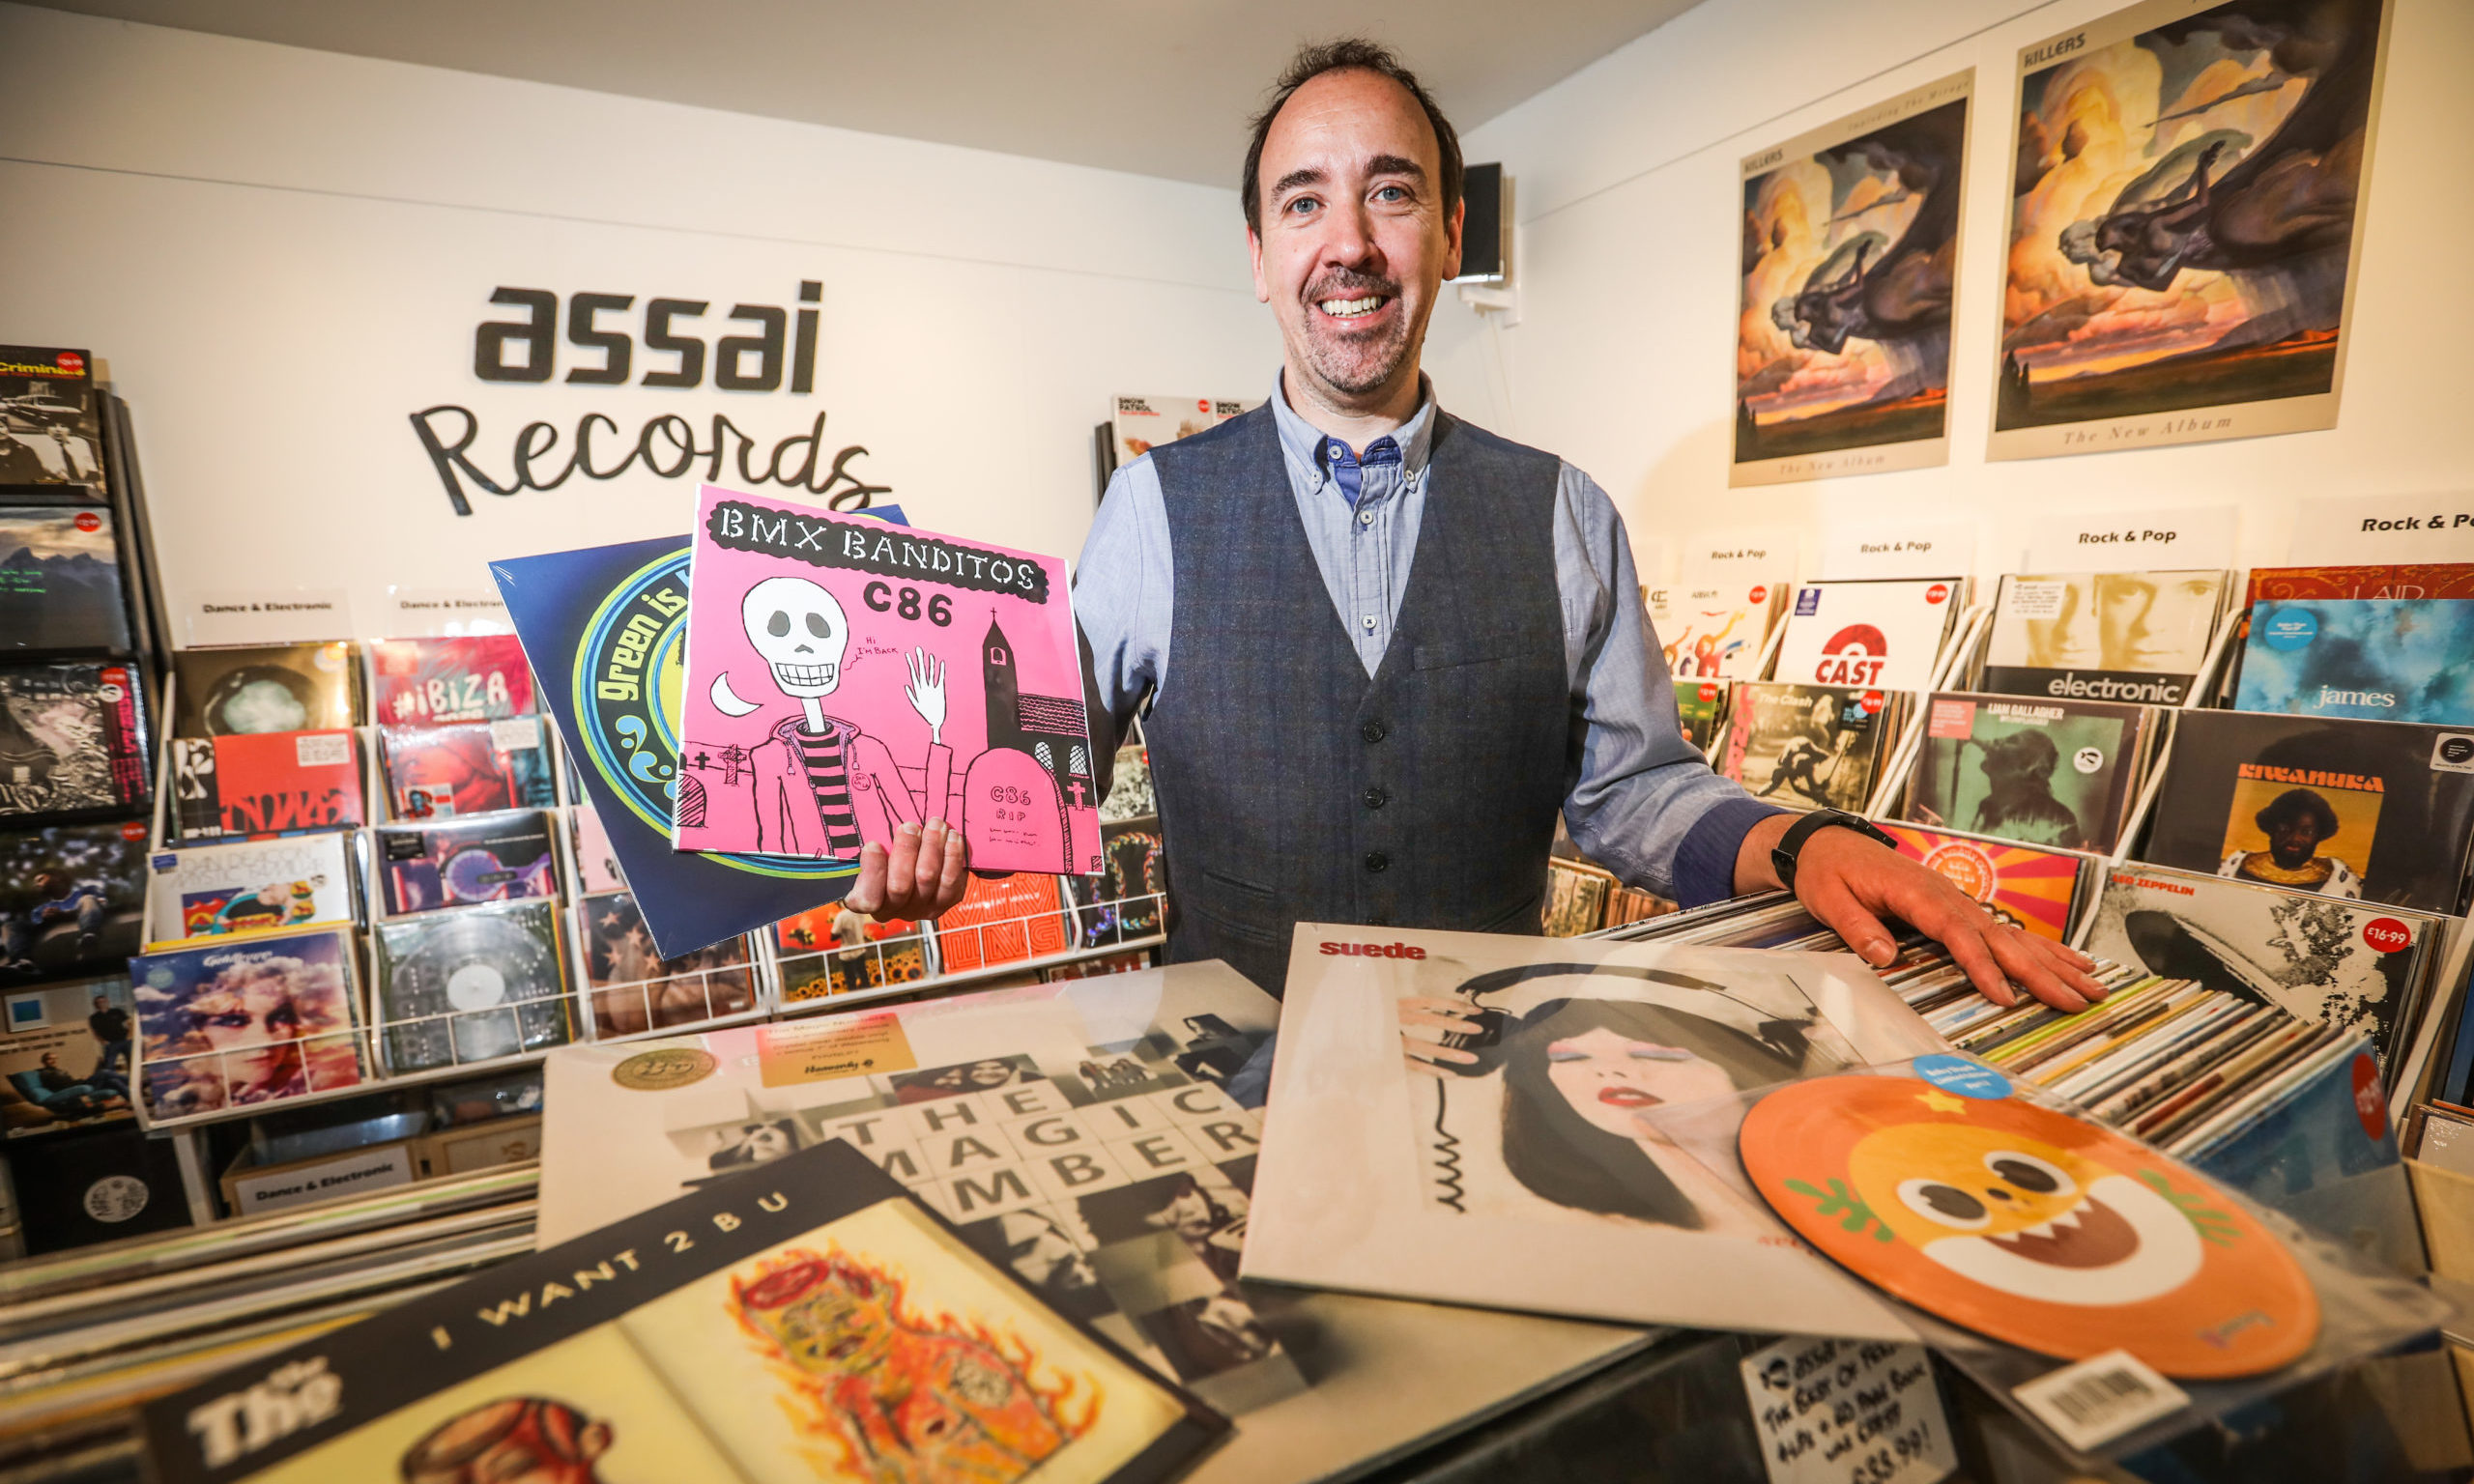 Keith Ingram, owner of Assai Records, with some of this year's Record Store Day releases.